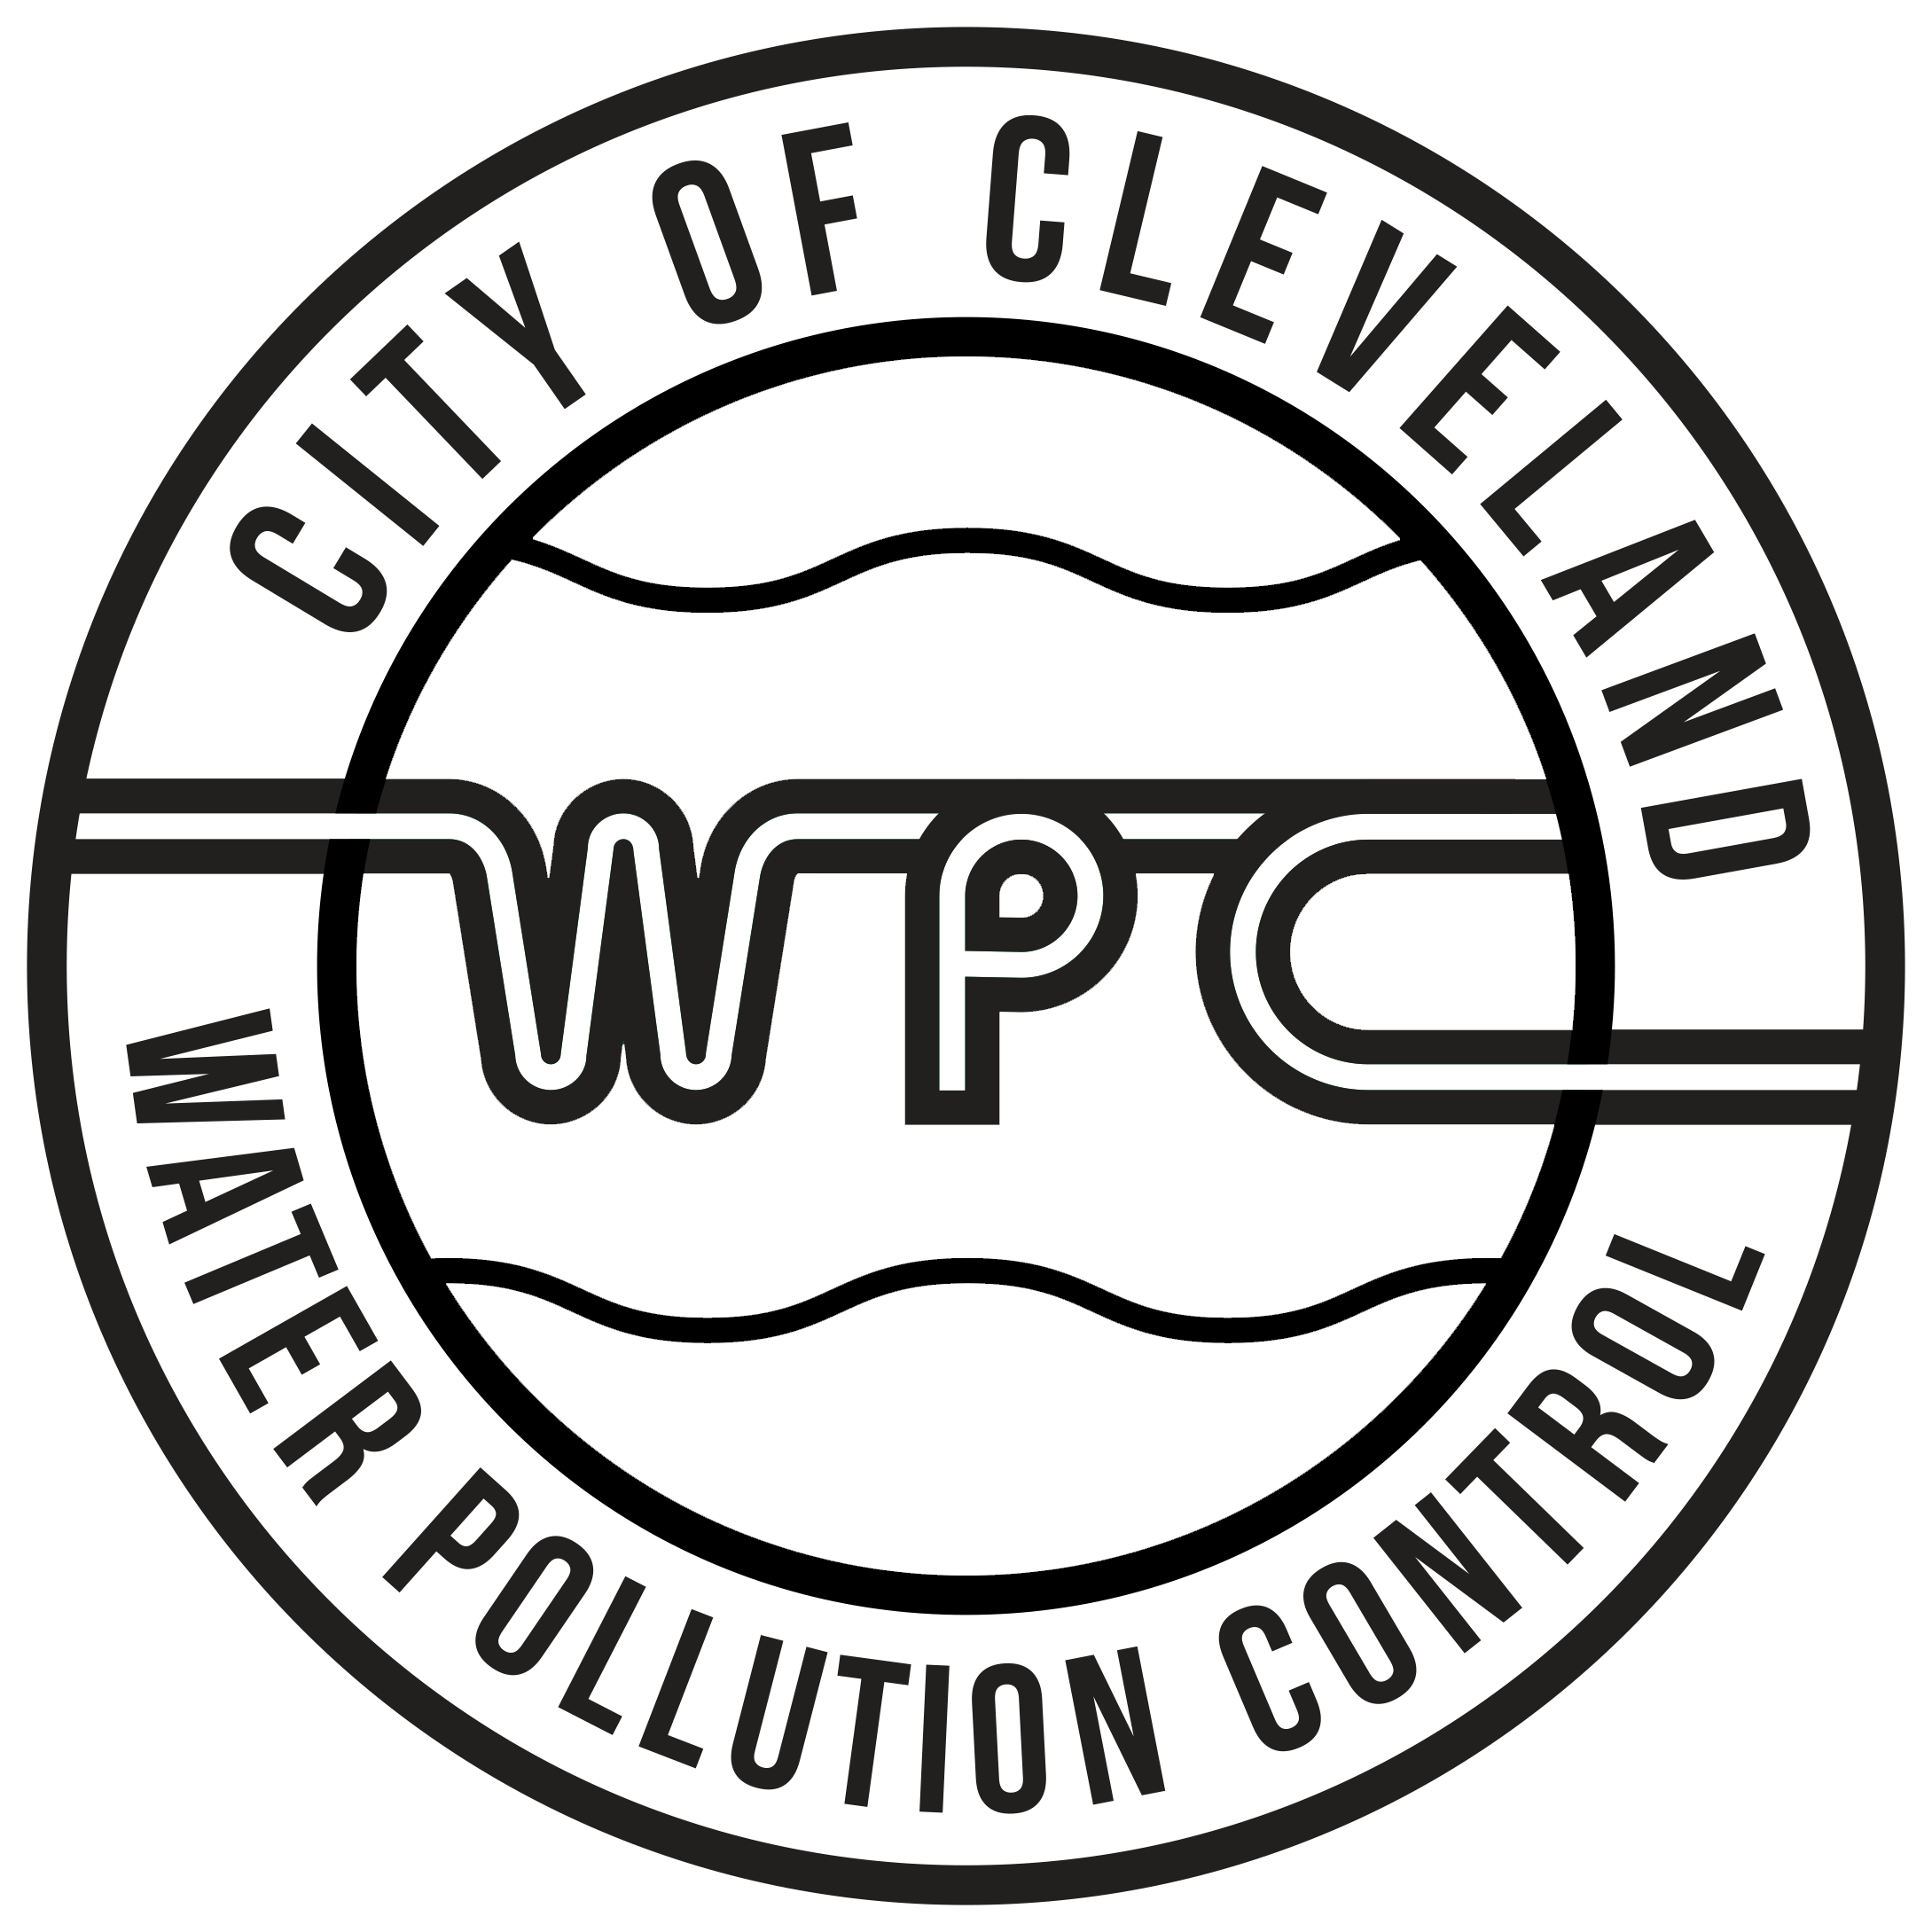 WPC (All White Logo)